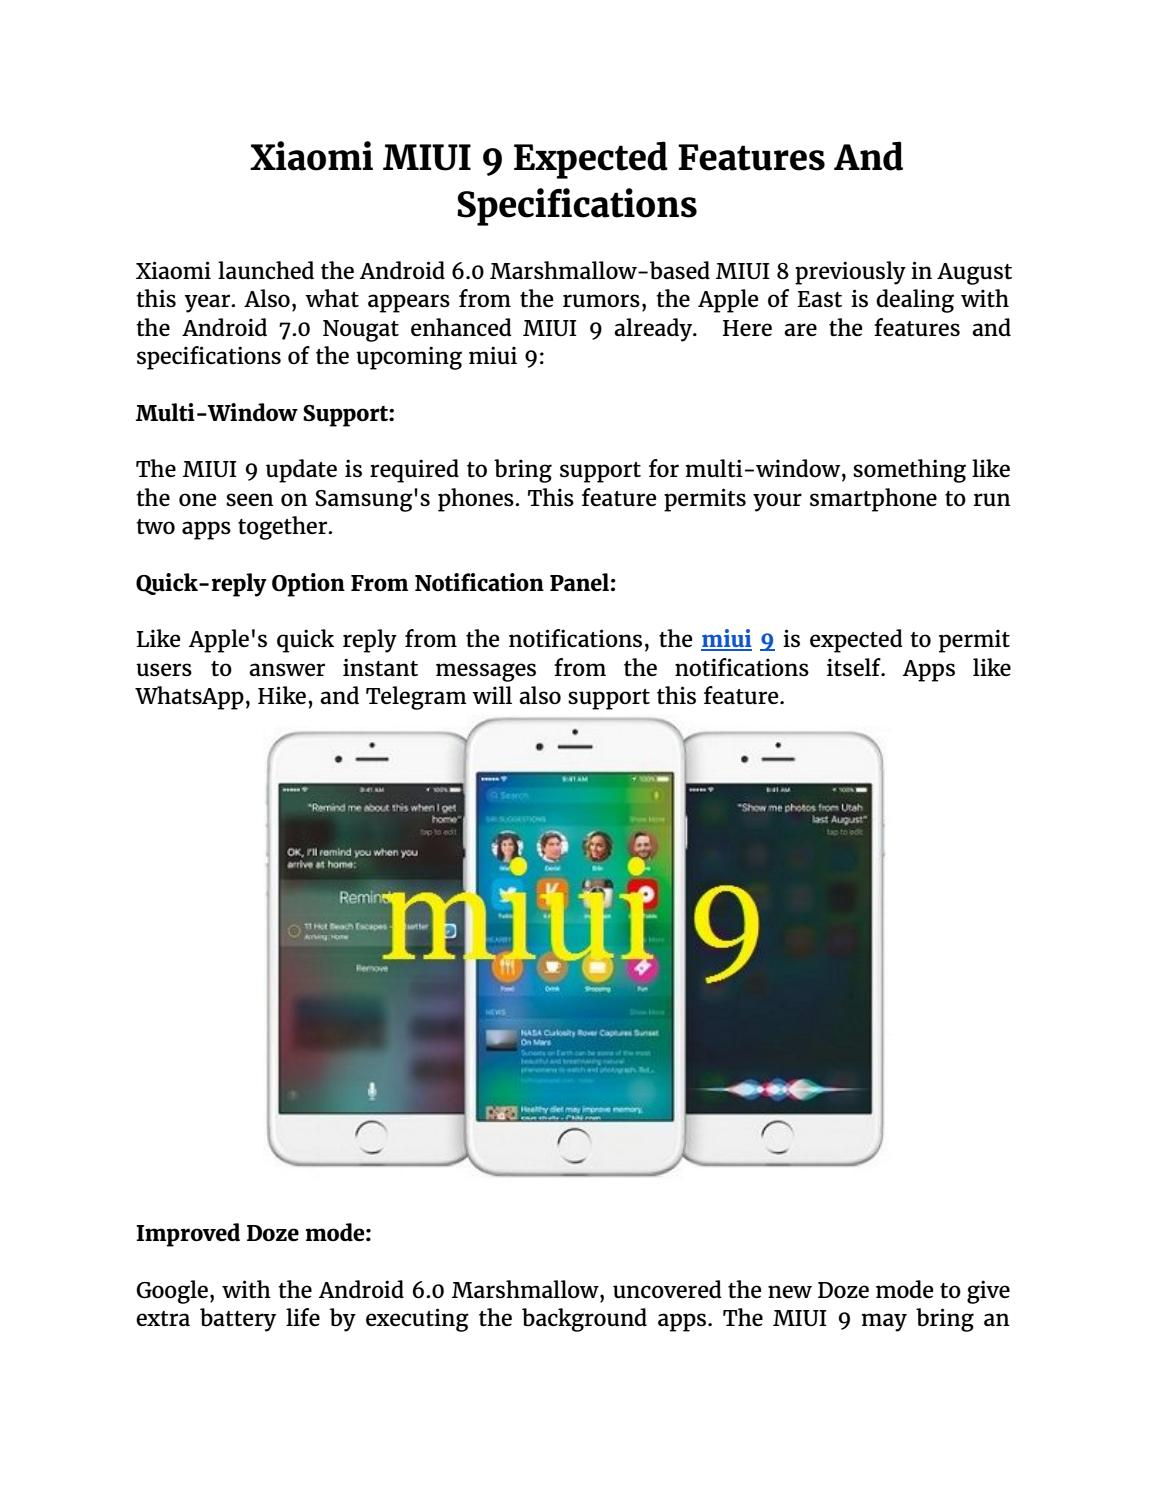 Xiaomi MIUI 9 Expected Features And Specifications by Arohi